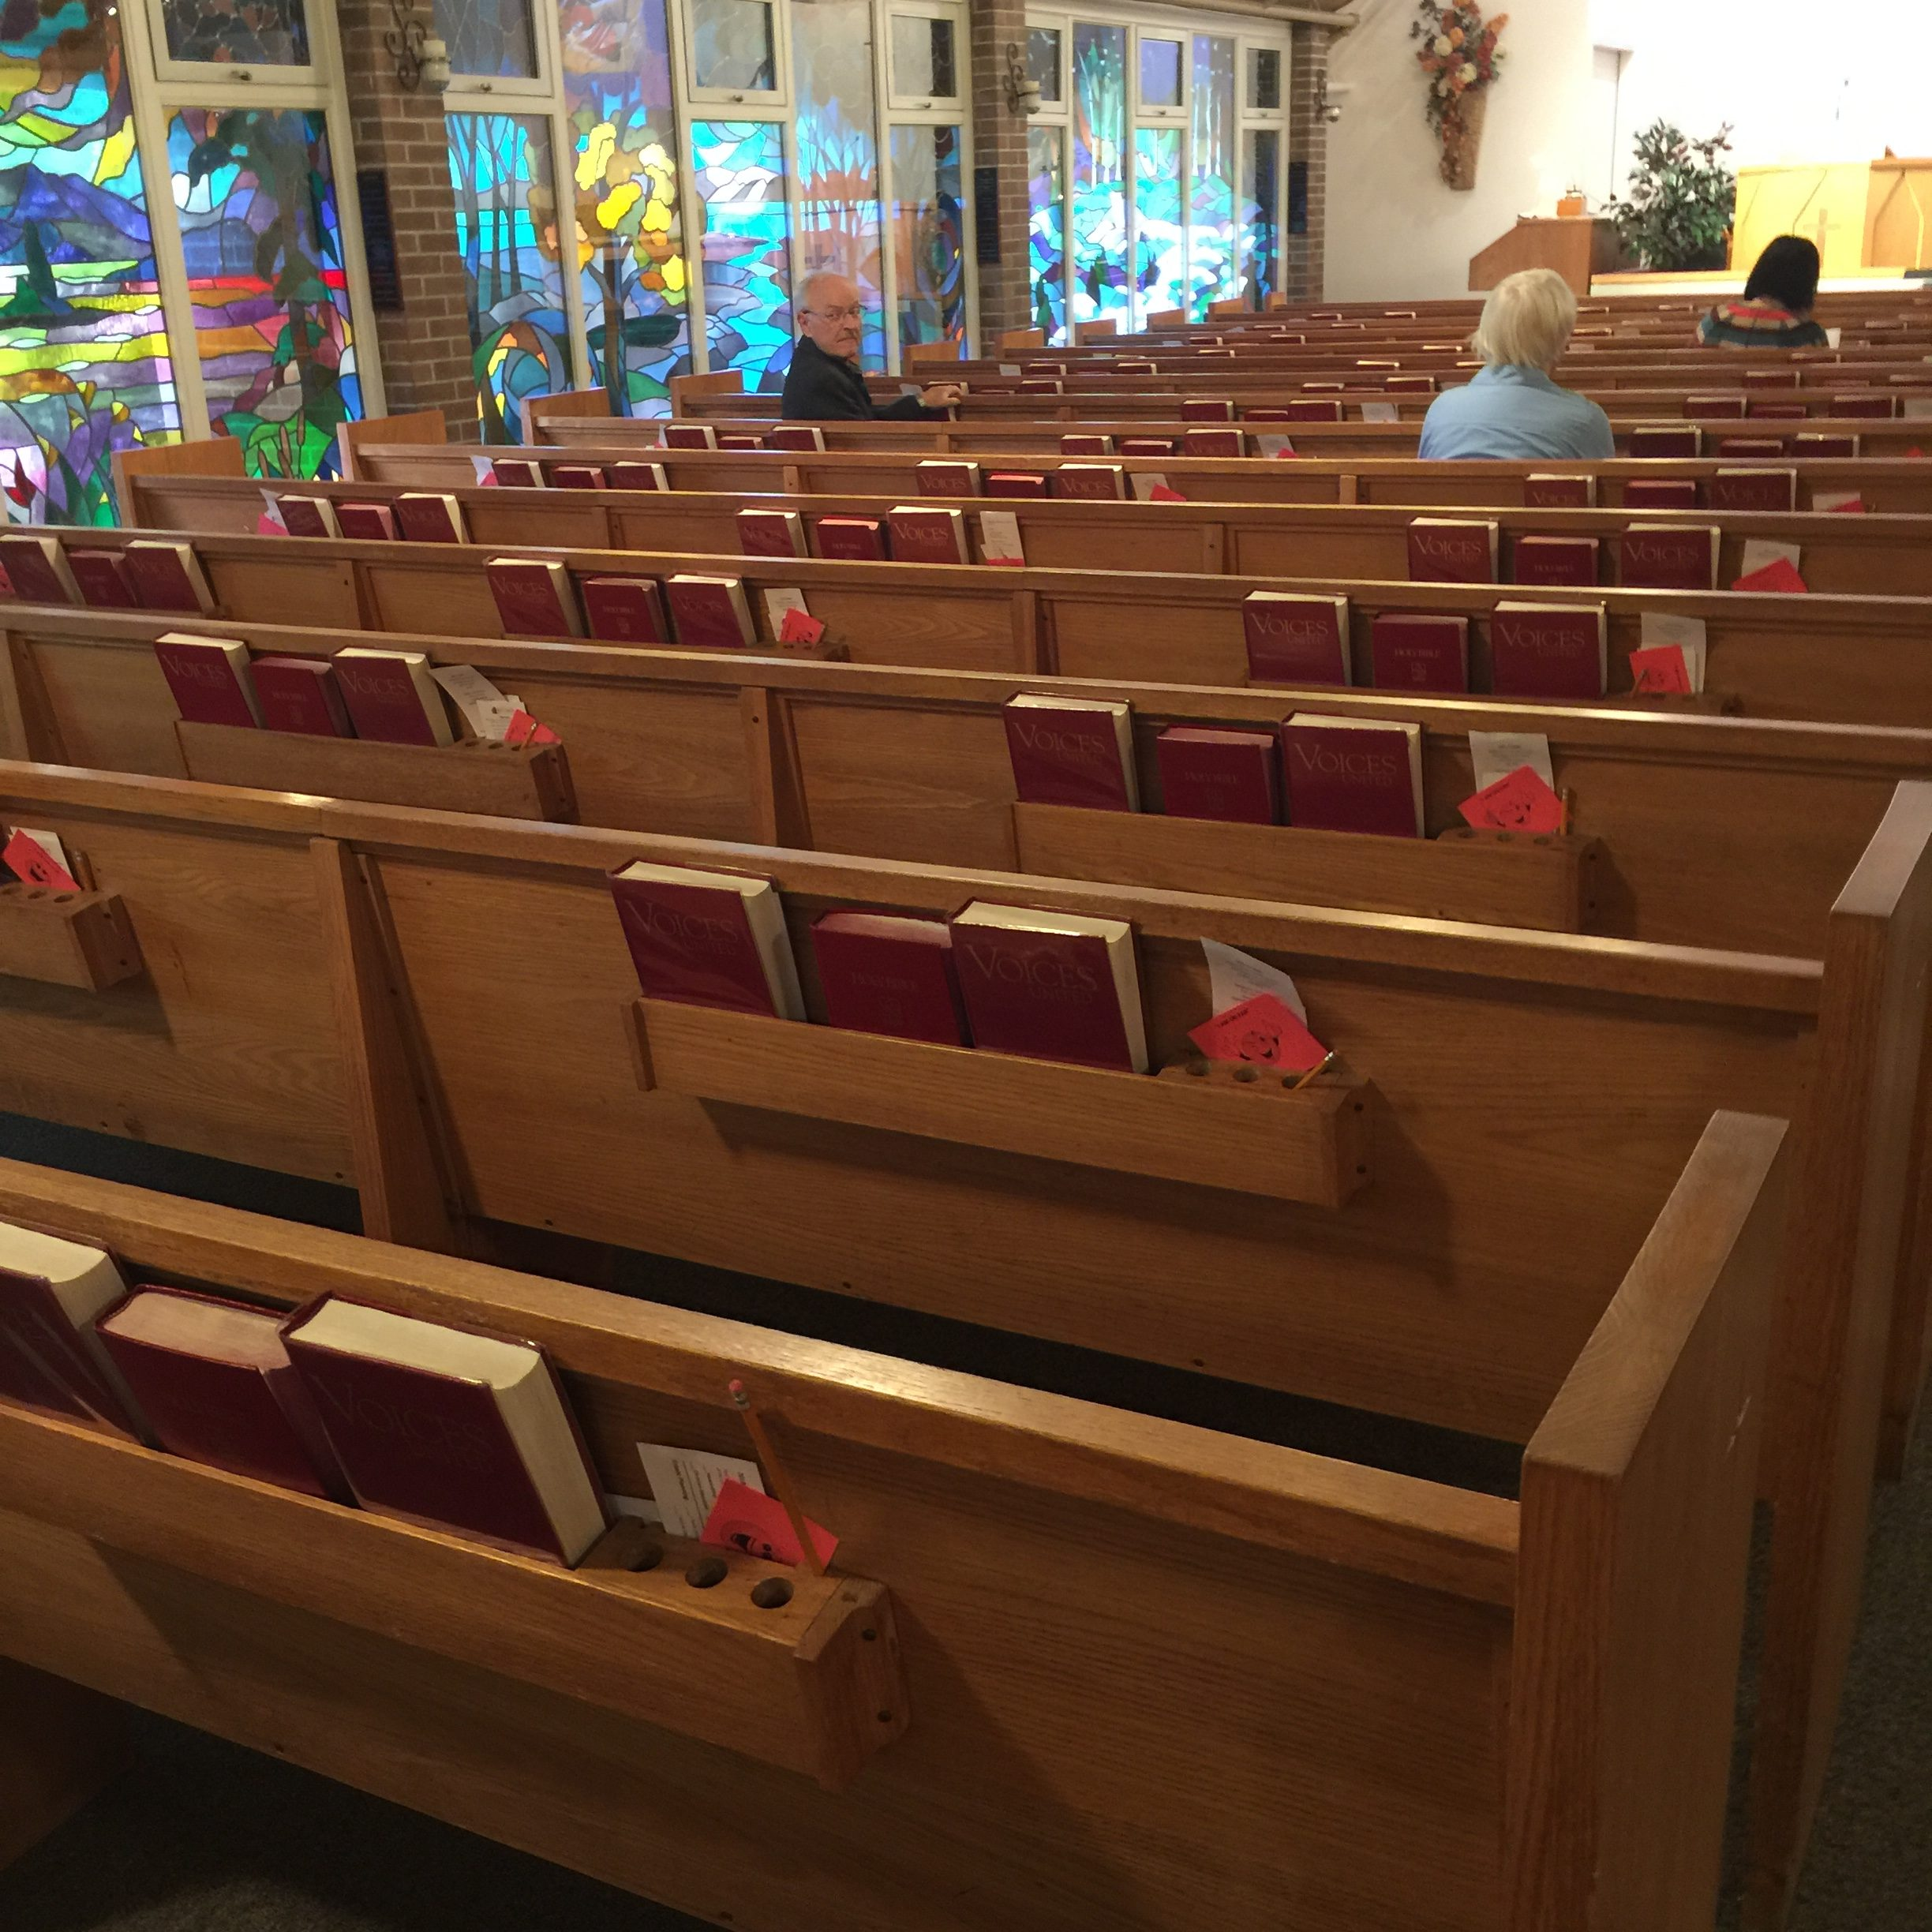 church pews and stained glass windows